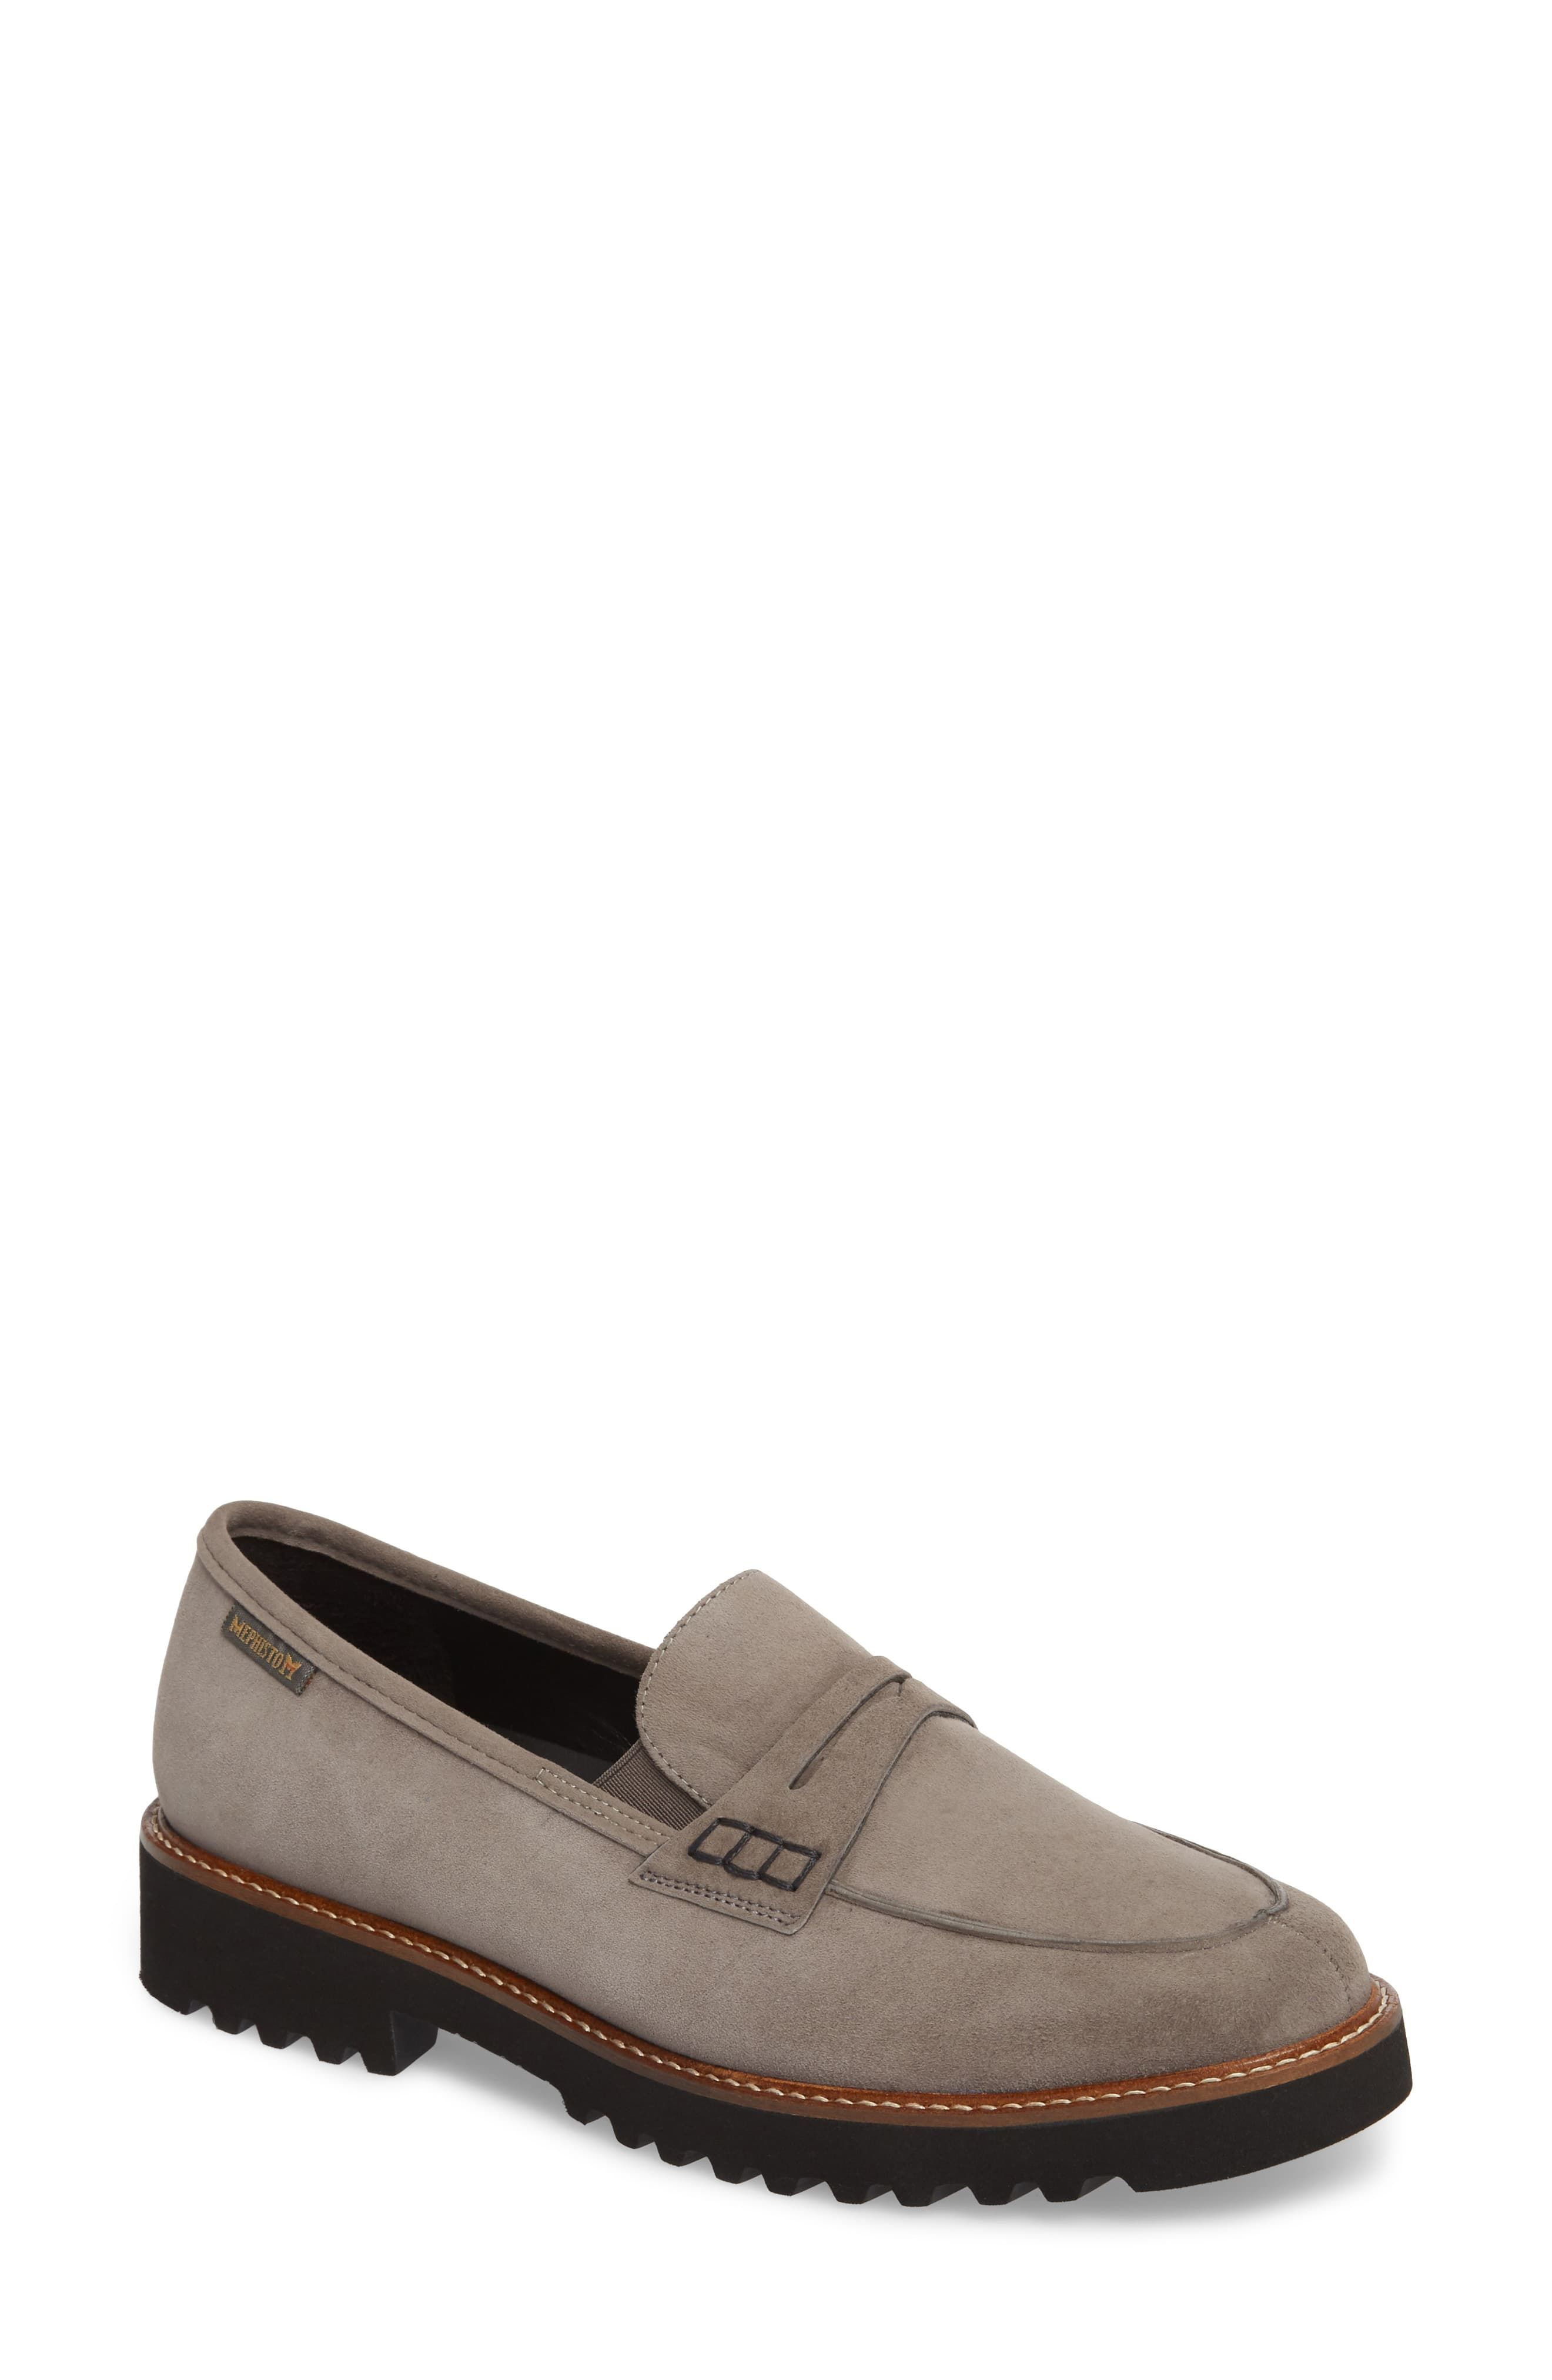 08d1015645 Women's Mephisto Sidney Penny Loafer, Size 6 M - Grey in 2019 ...